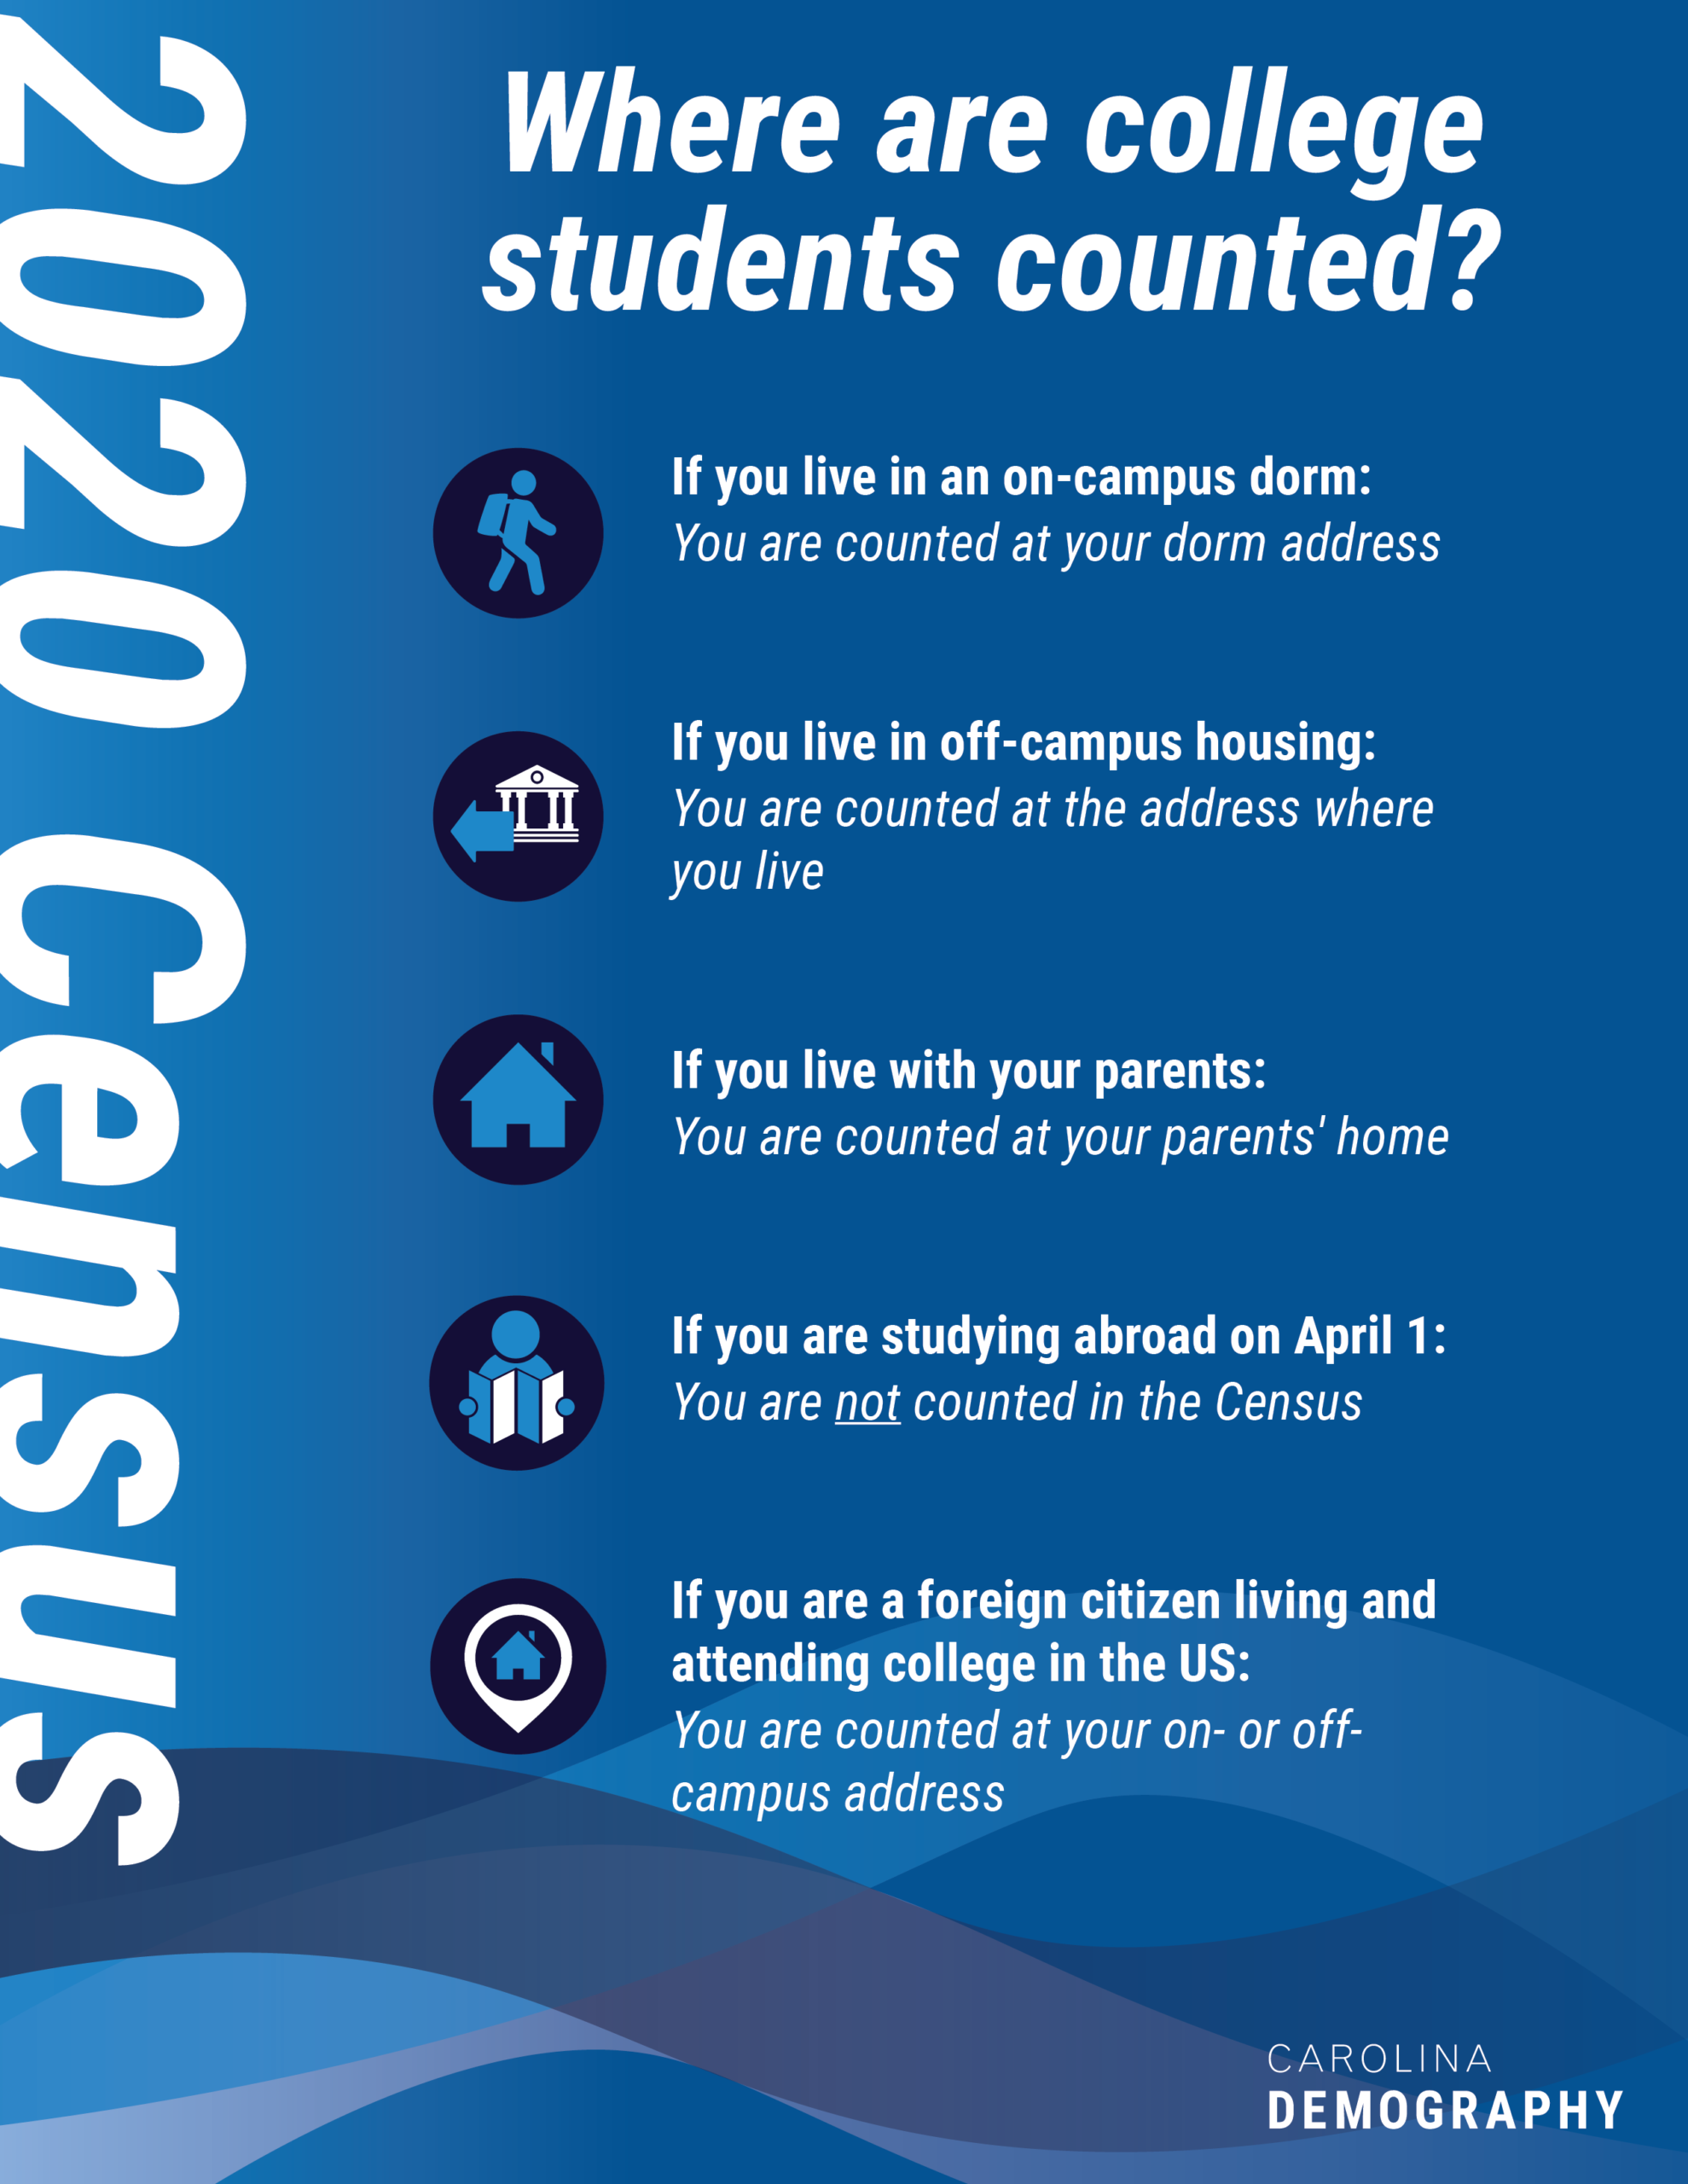 2020 Census: Where are college students counted? If you live in an on-campus dorm: You are counted at your dorm address If you live in off-campus housing: You are counted at the address where you live If you live with your parents: You are counted at your parents' home If you are studying abroad on April 1: You are not counted in the Census If you are a foreign citizen living and attending college in the US: You are counted at your on- or off- campus address